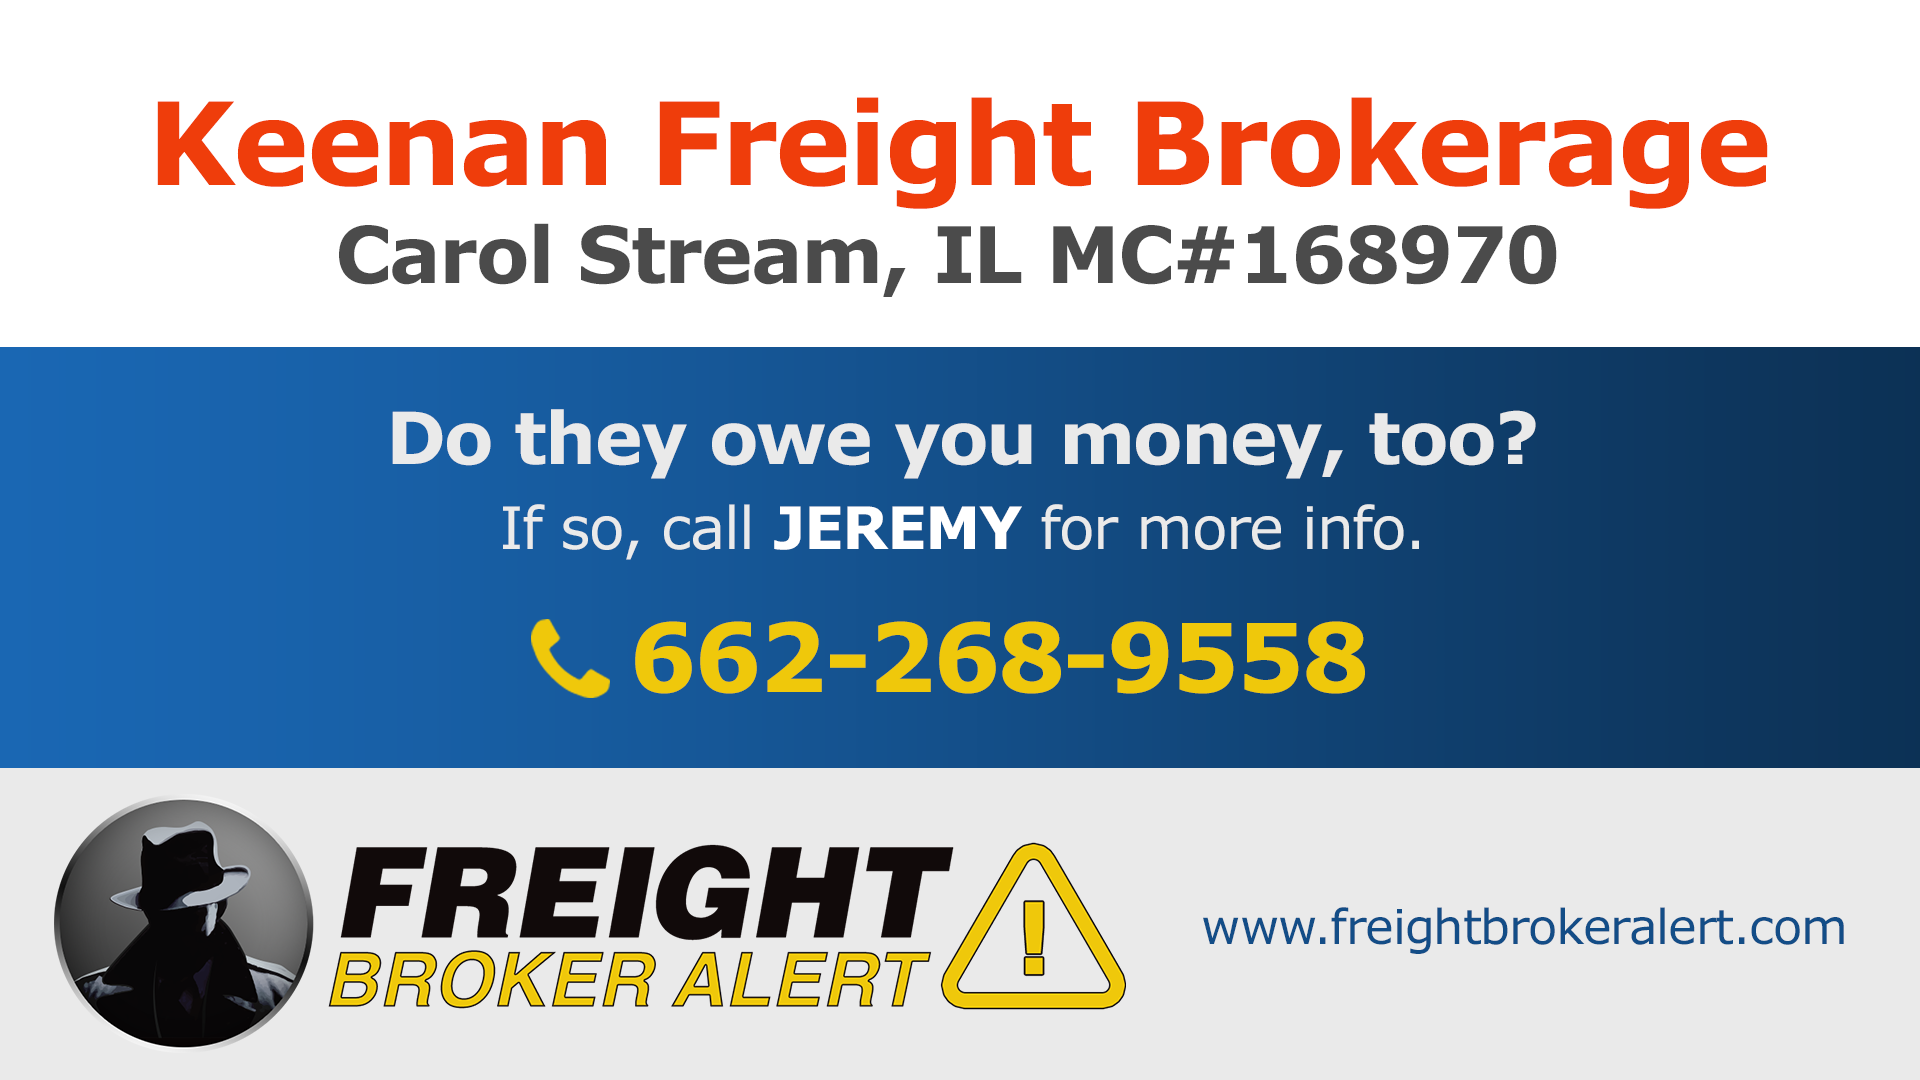 Keenan Freight Brokerage Keenan Global Solutions Inc Illinois